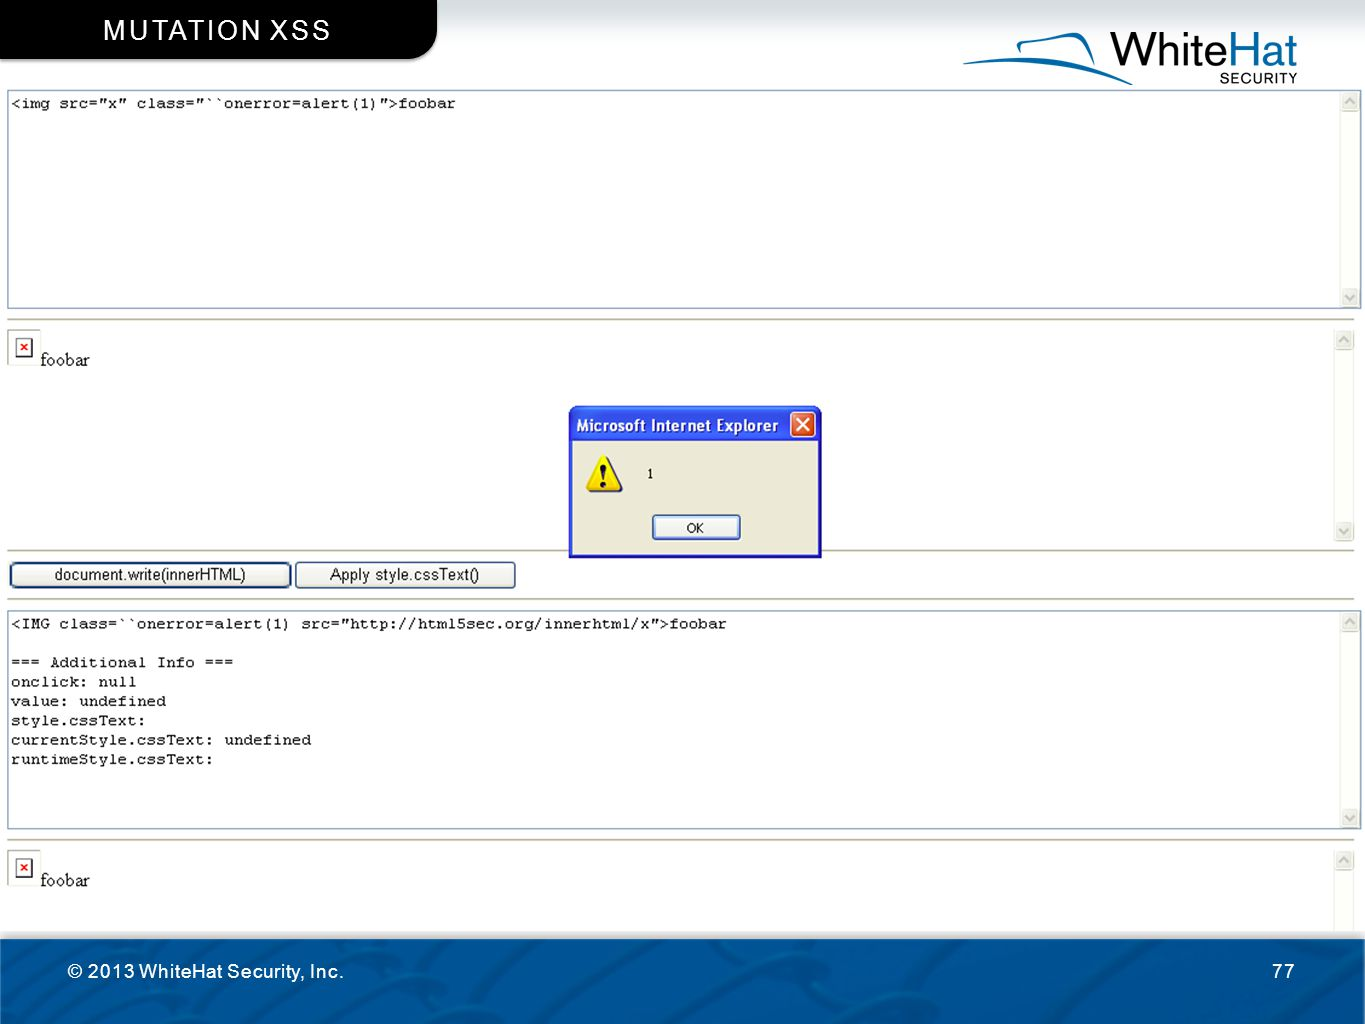 Mutation XSS http://html5sec.org/innerhtml/ Test-suite so that you can see the effects of innerHTML.